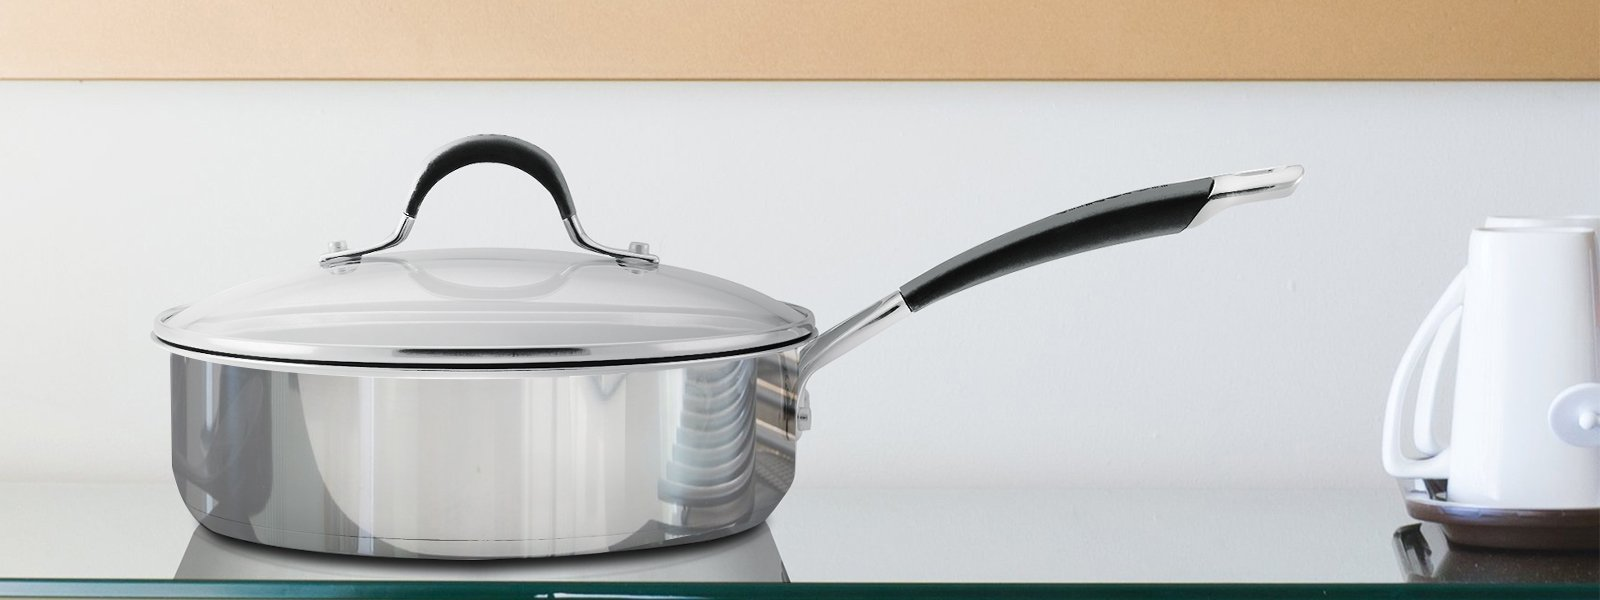 The Ultimate Non-stick Pan for Everyday Cooking- Sauté Pan